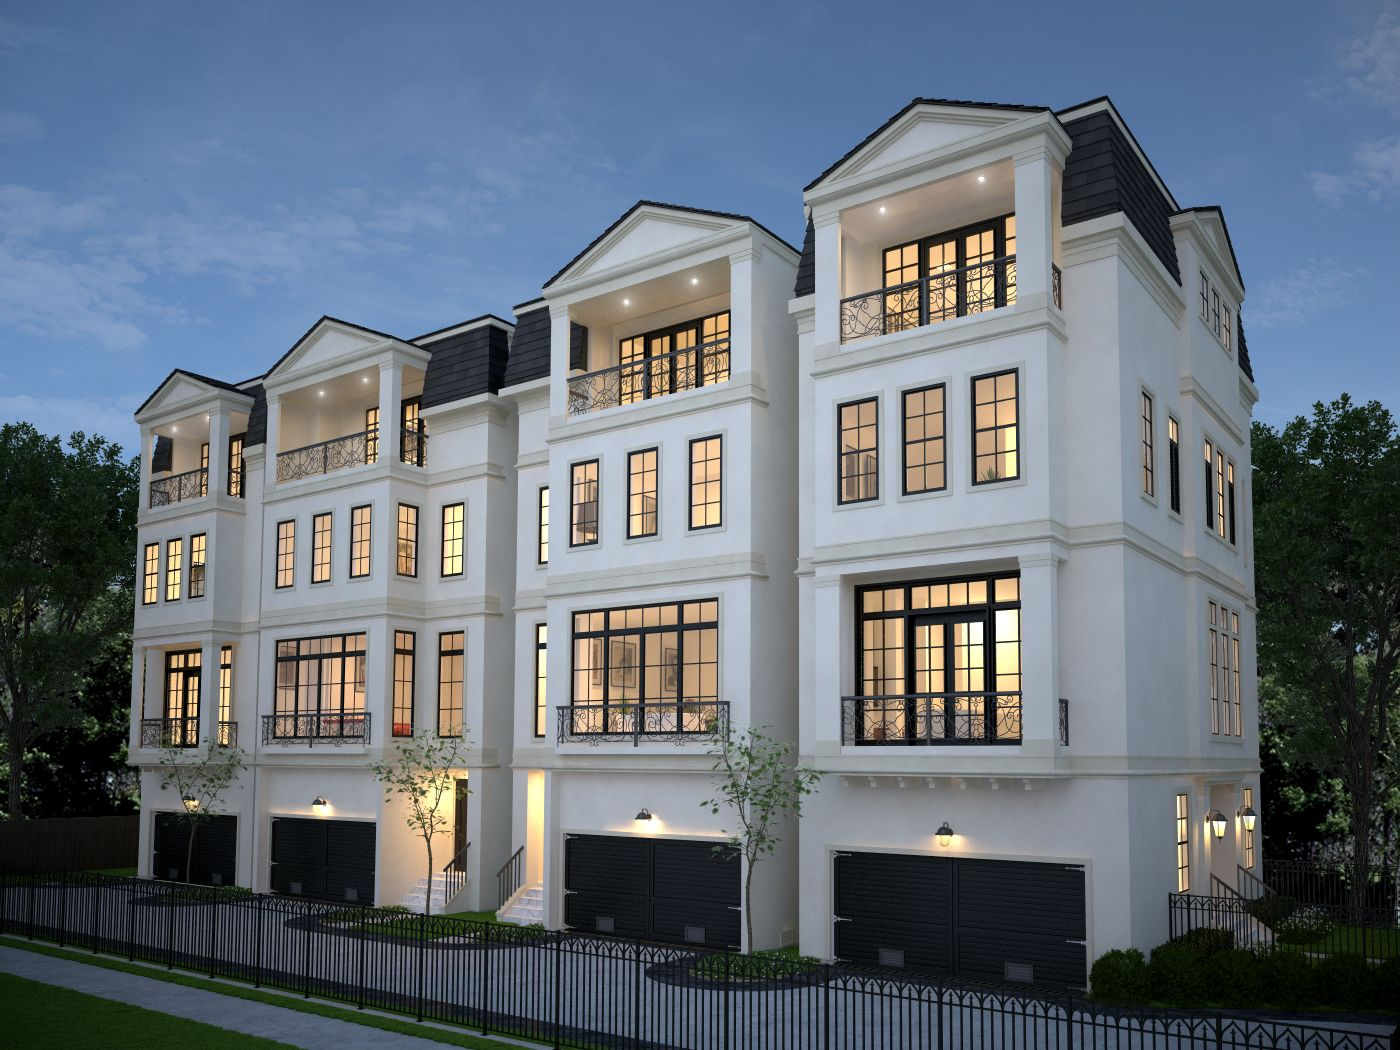 Four 4 story townhomes in houston by preston wood assoc for Four bedroom townhomes